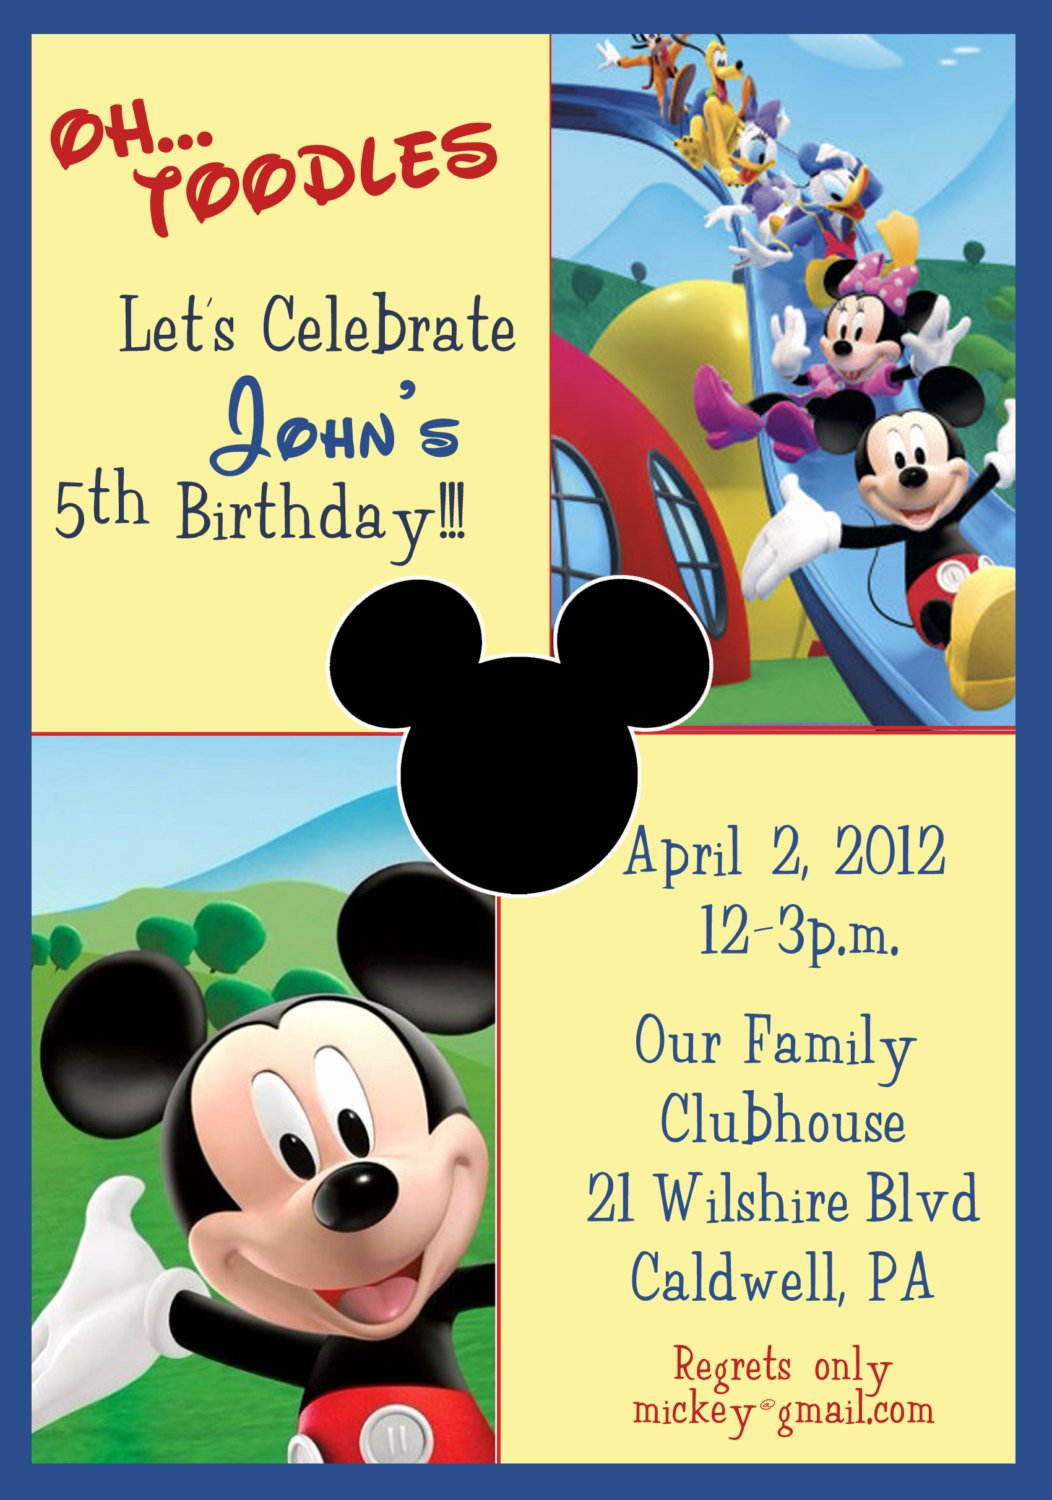 Mickey Mouse Clubhouse Invitations Awesome Mickey Mouse Clubhouse Birthday Invitations Mickey Mouse